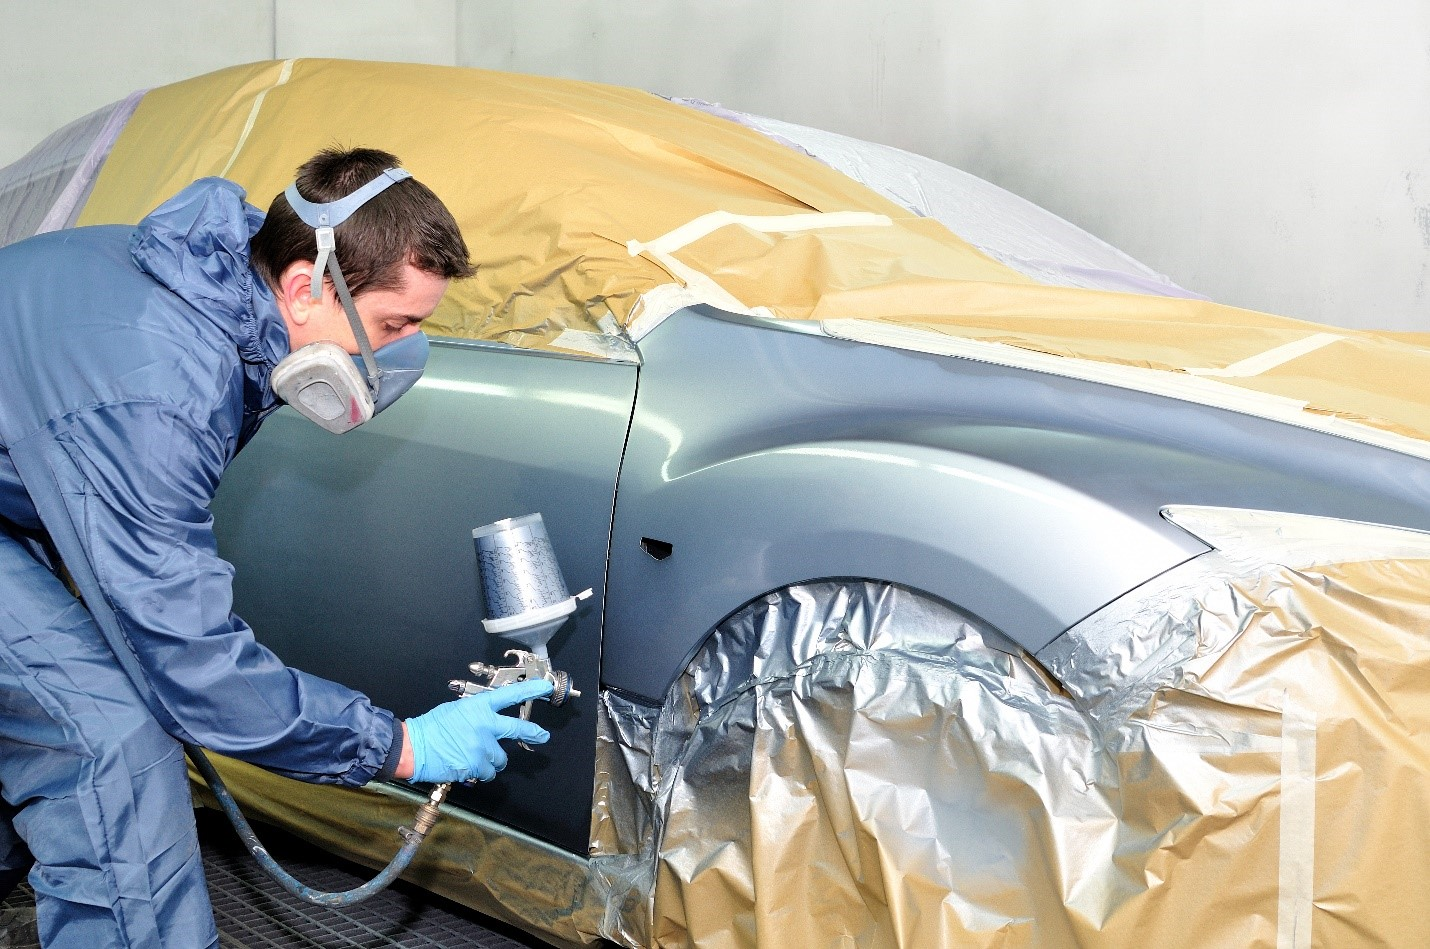 Breezy Point Auto Body uses environmentally-friendly waterborne paint and an infrared paint-drying process that allows us to return your vehicle more quickly than traditional auto paint techniques. Our skilled technicians can help you find the perfect color for your vehicle.